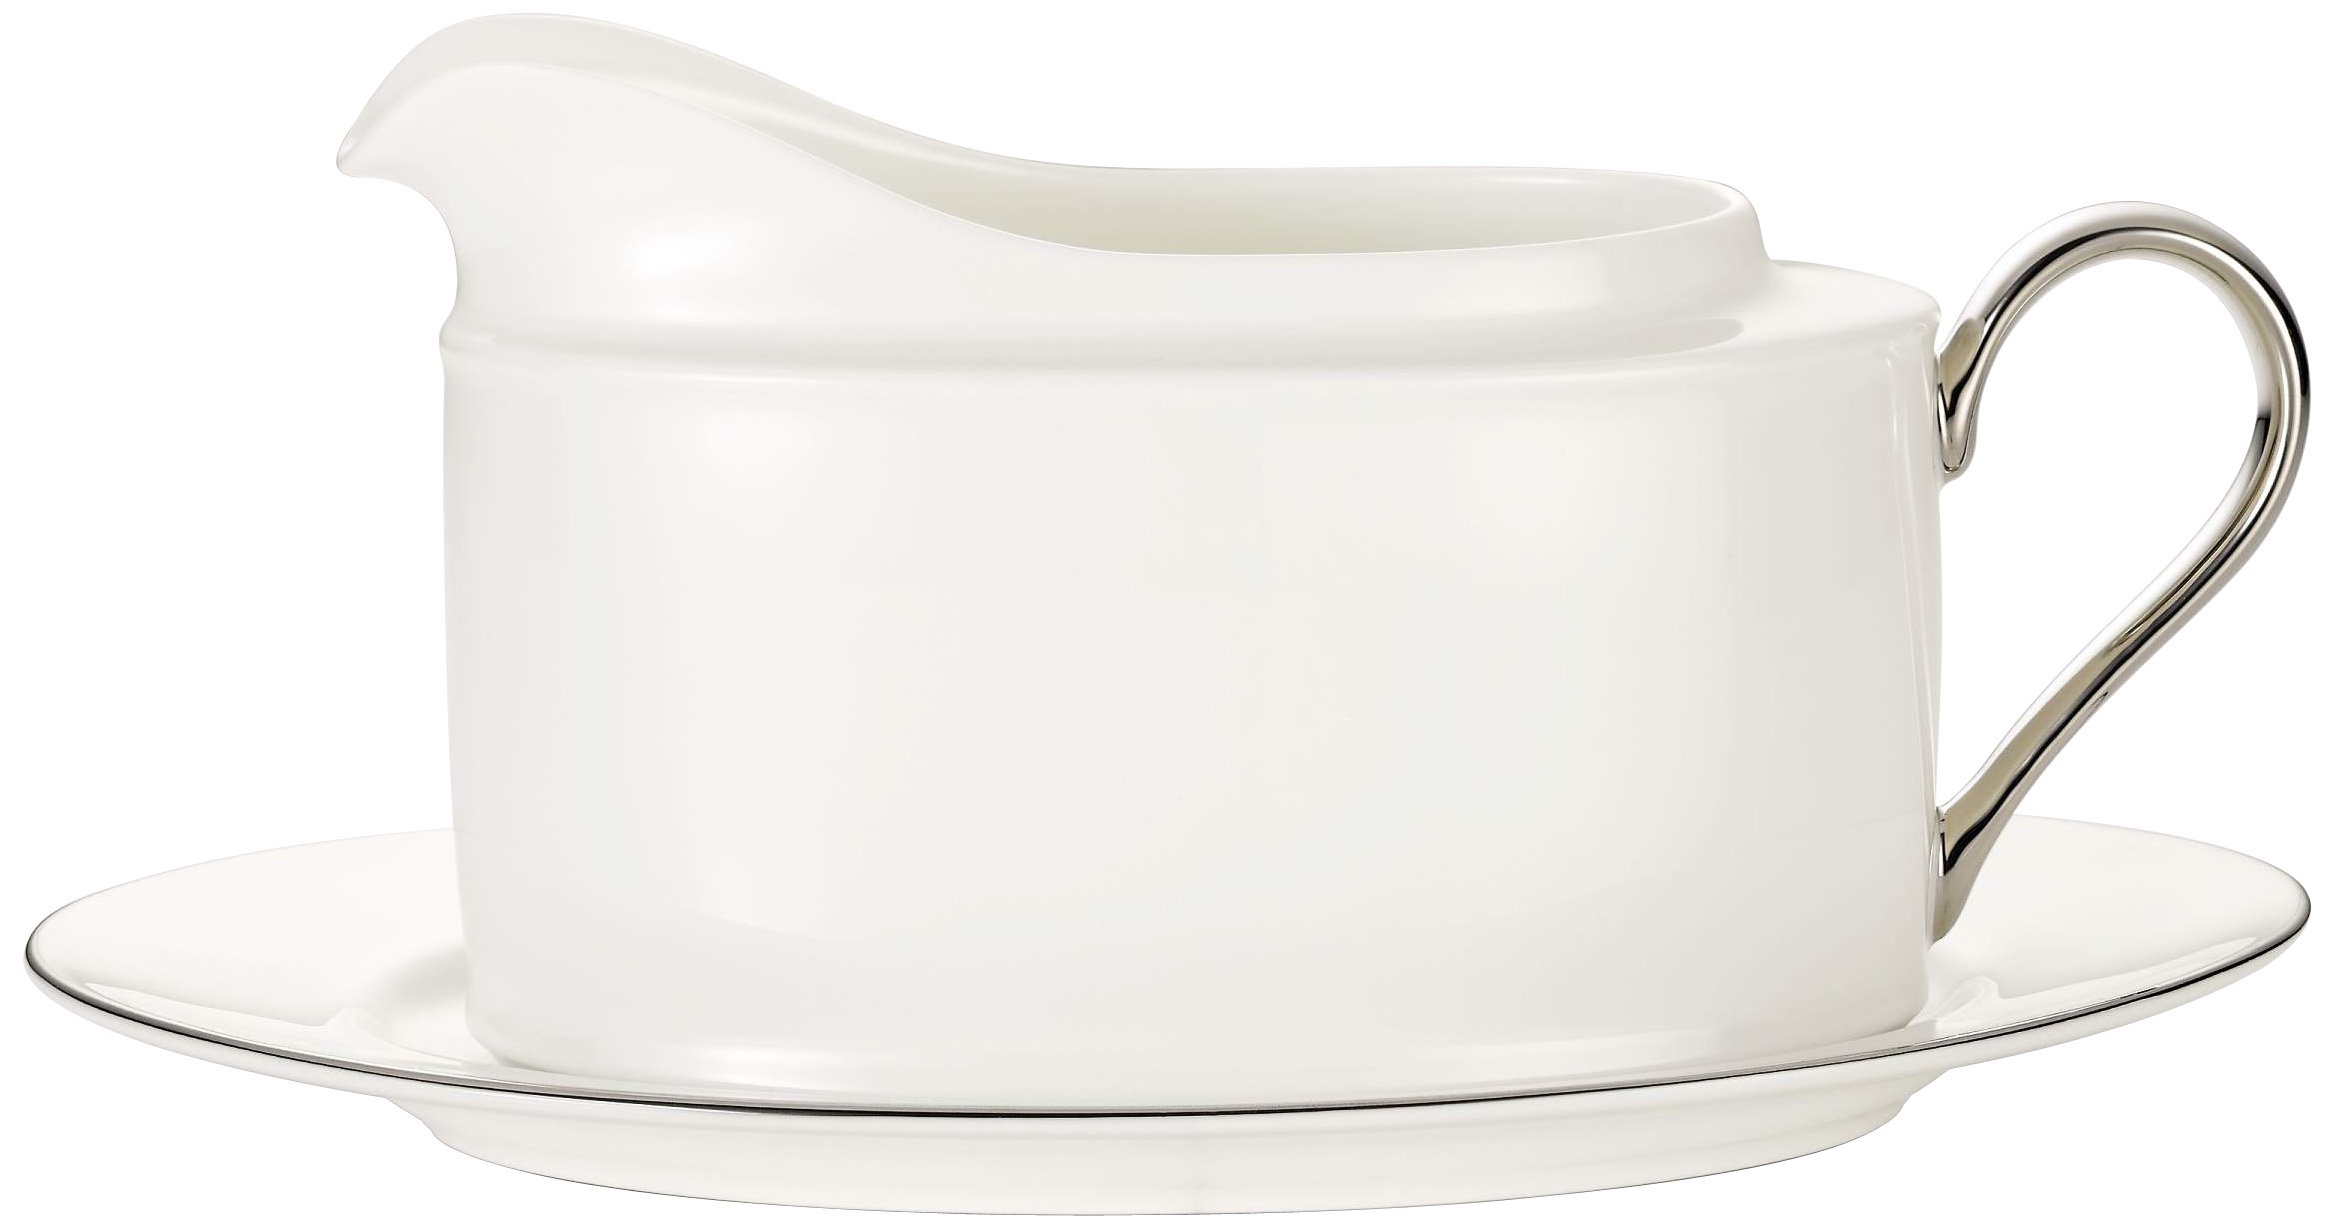 Noritake Maestro Gravy Boat with Stand by Noritake (Image #1)